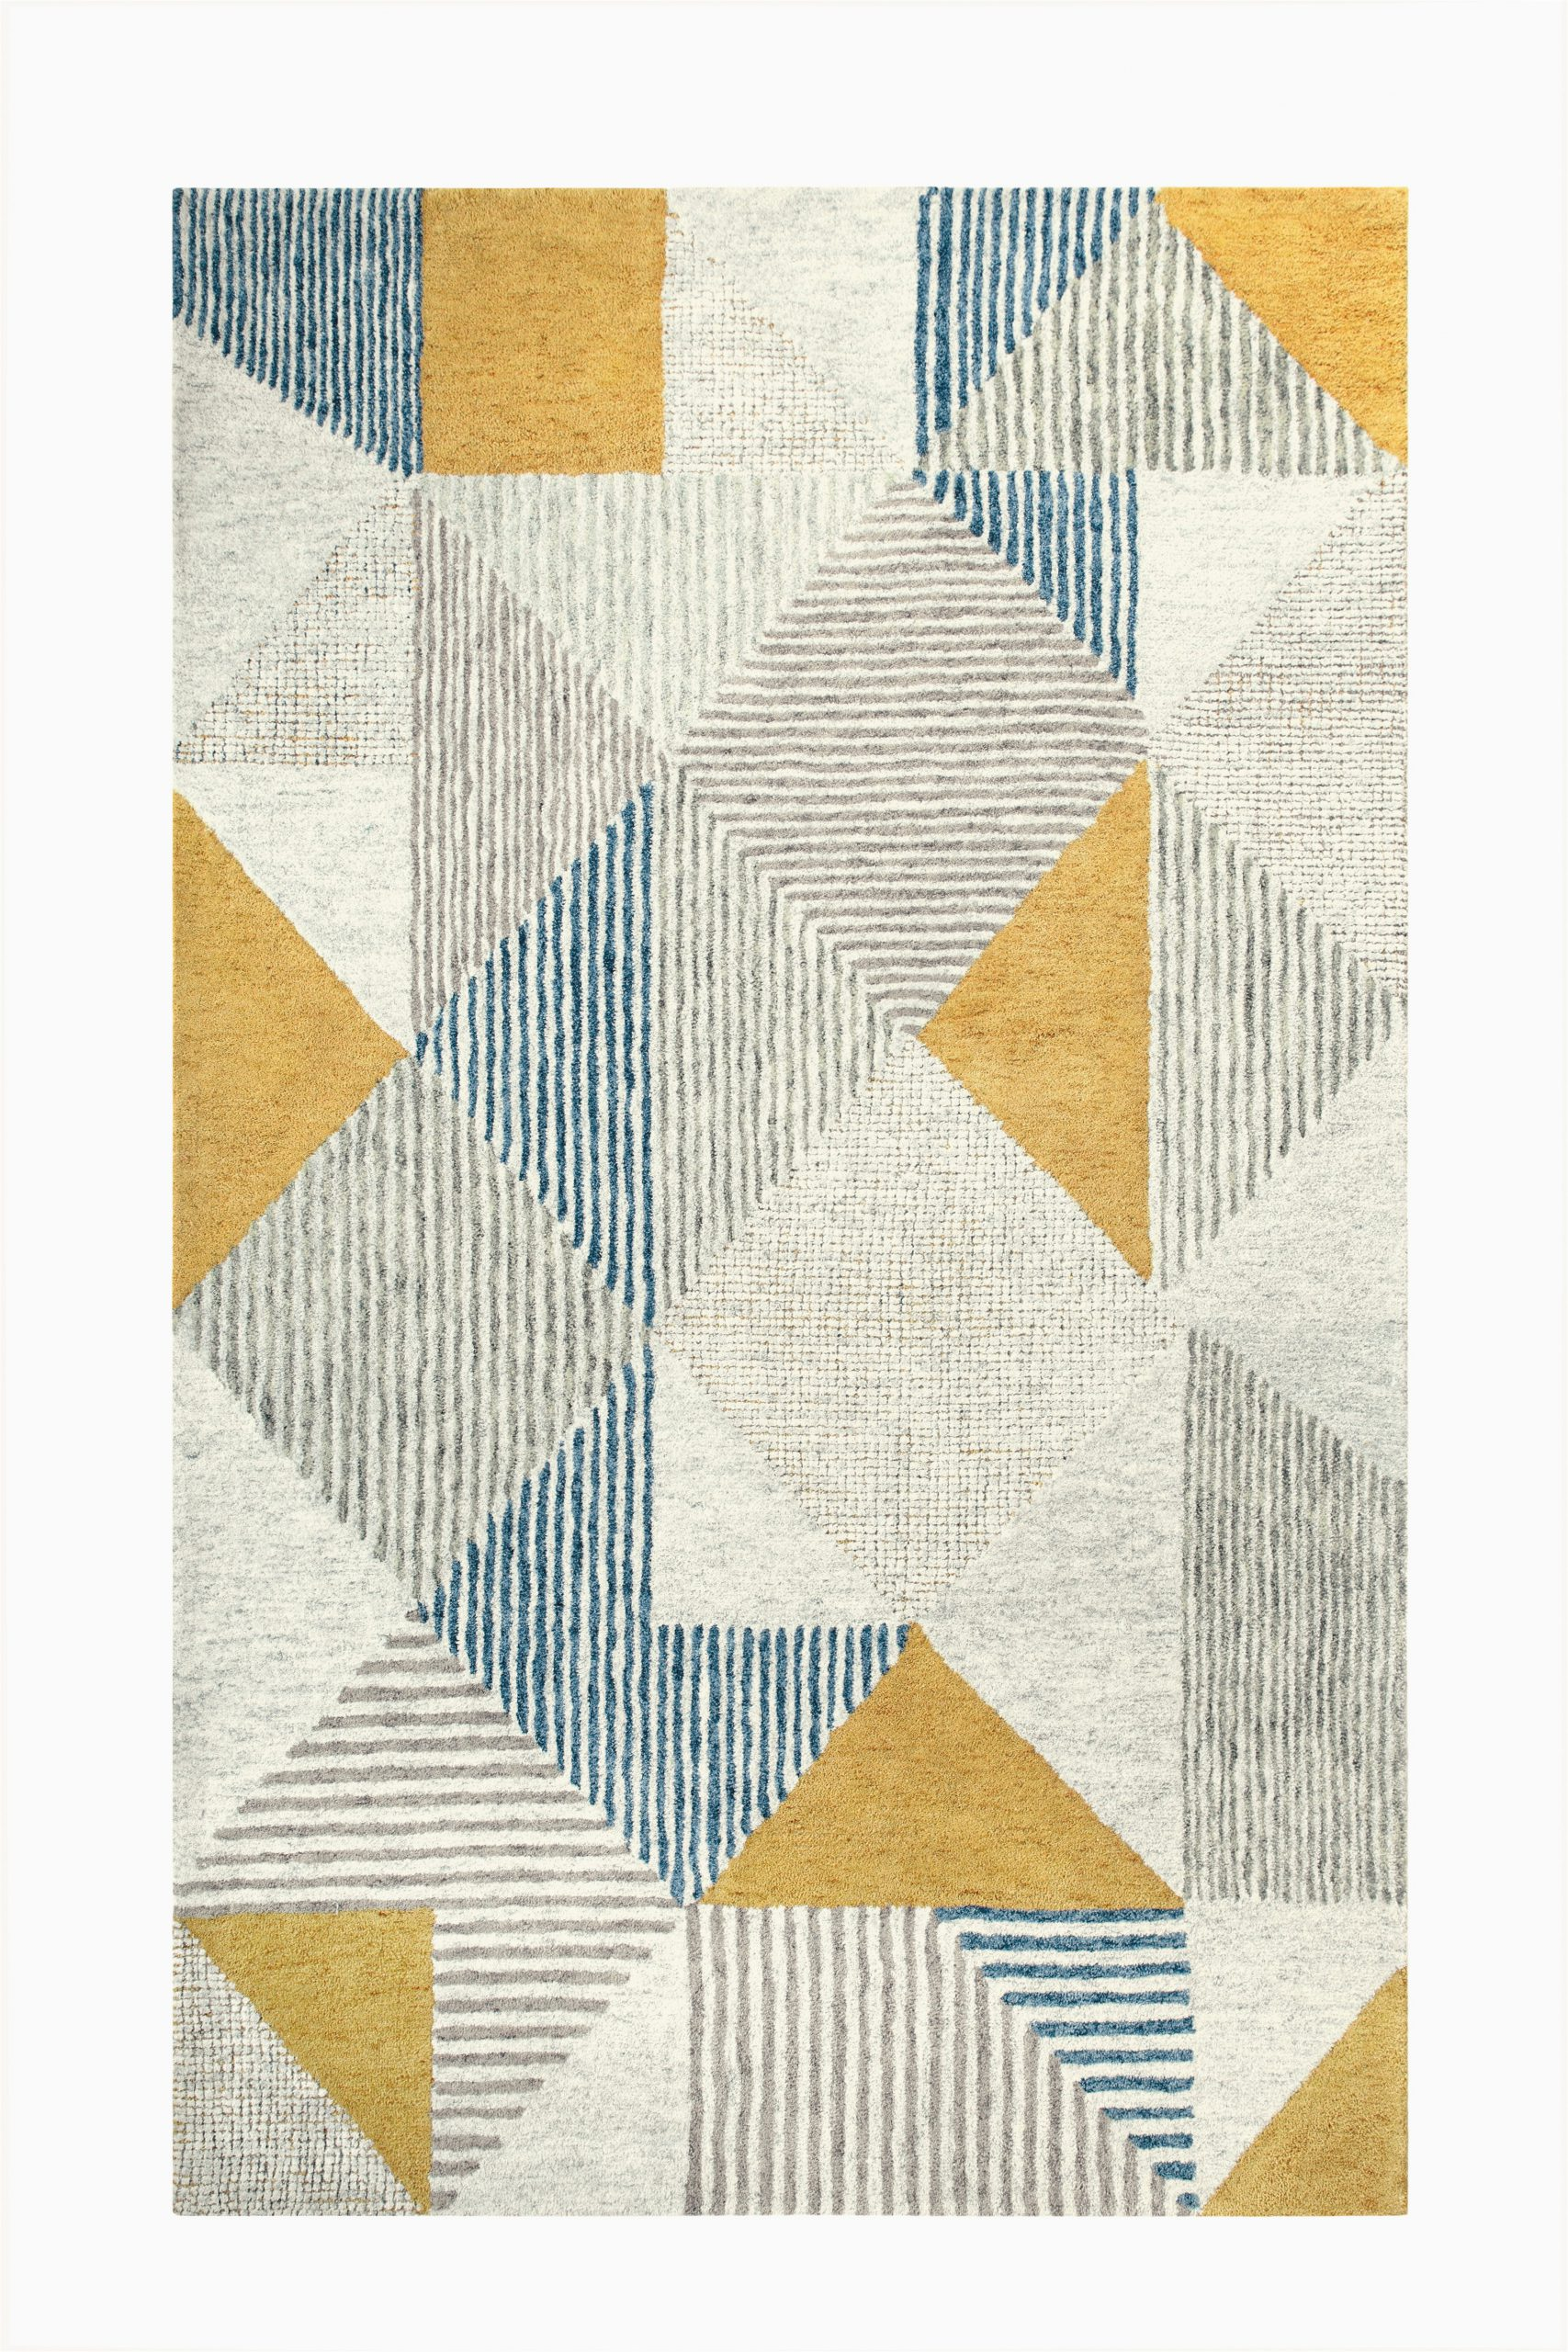 Blue and Yellow Throw Rugs Griffin Geometric Handmade Tufted Wool Blue Gray Yellow area Rug